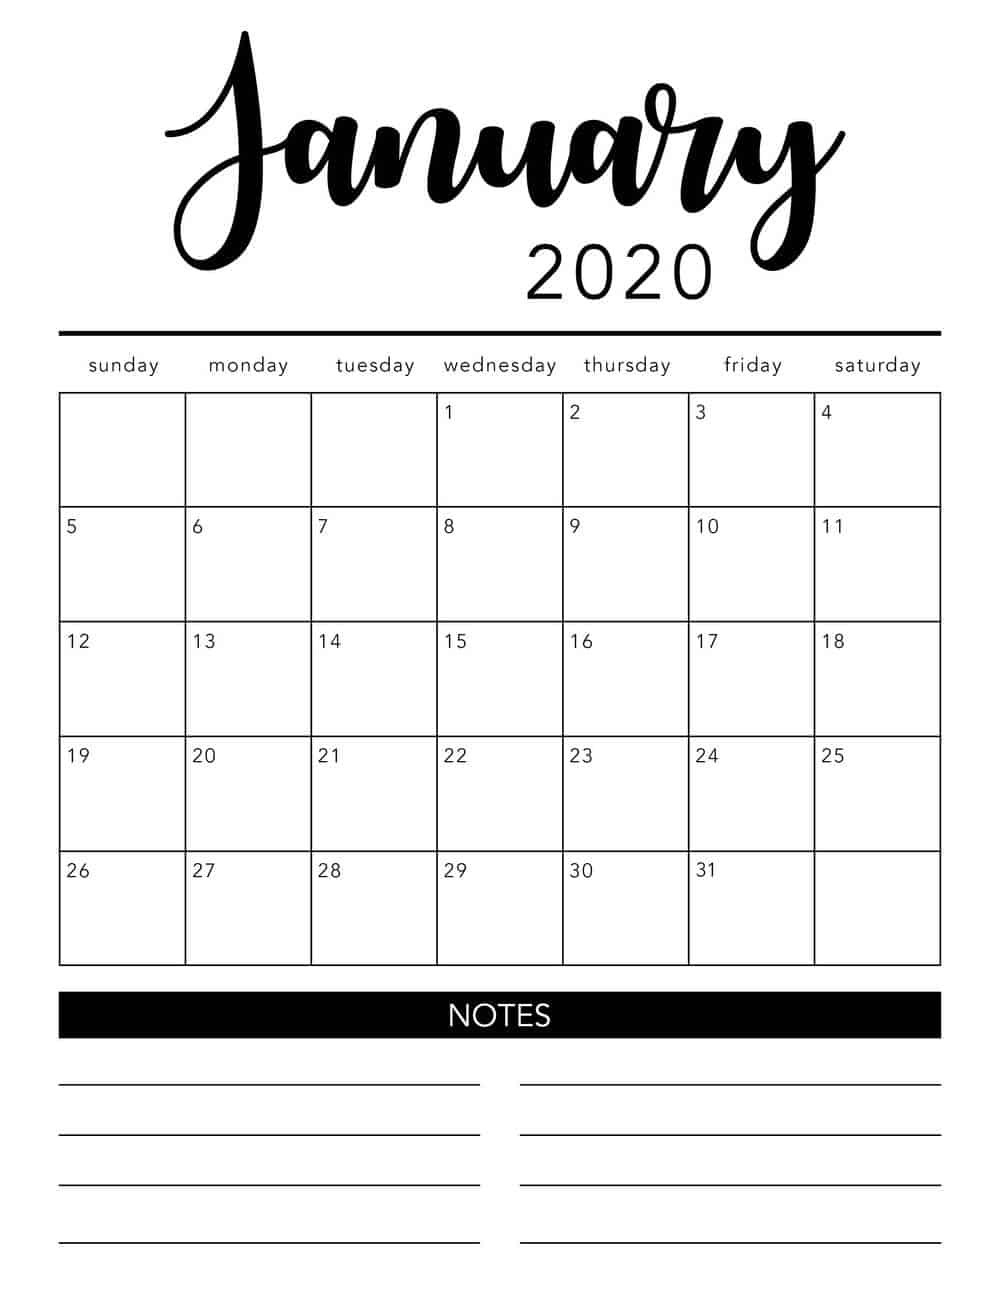 Free 2020 Printable Calendar Template (2 Colors!) - I Heart-Printable Monthly Calander Sheets